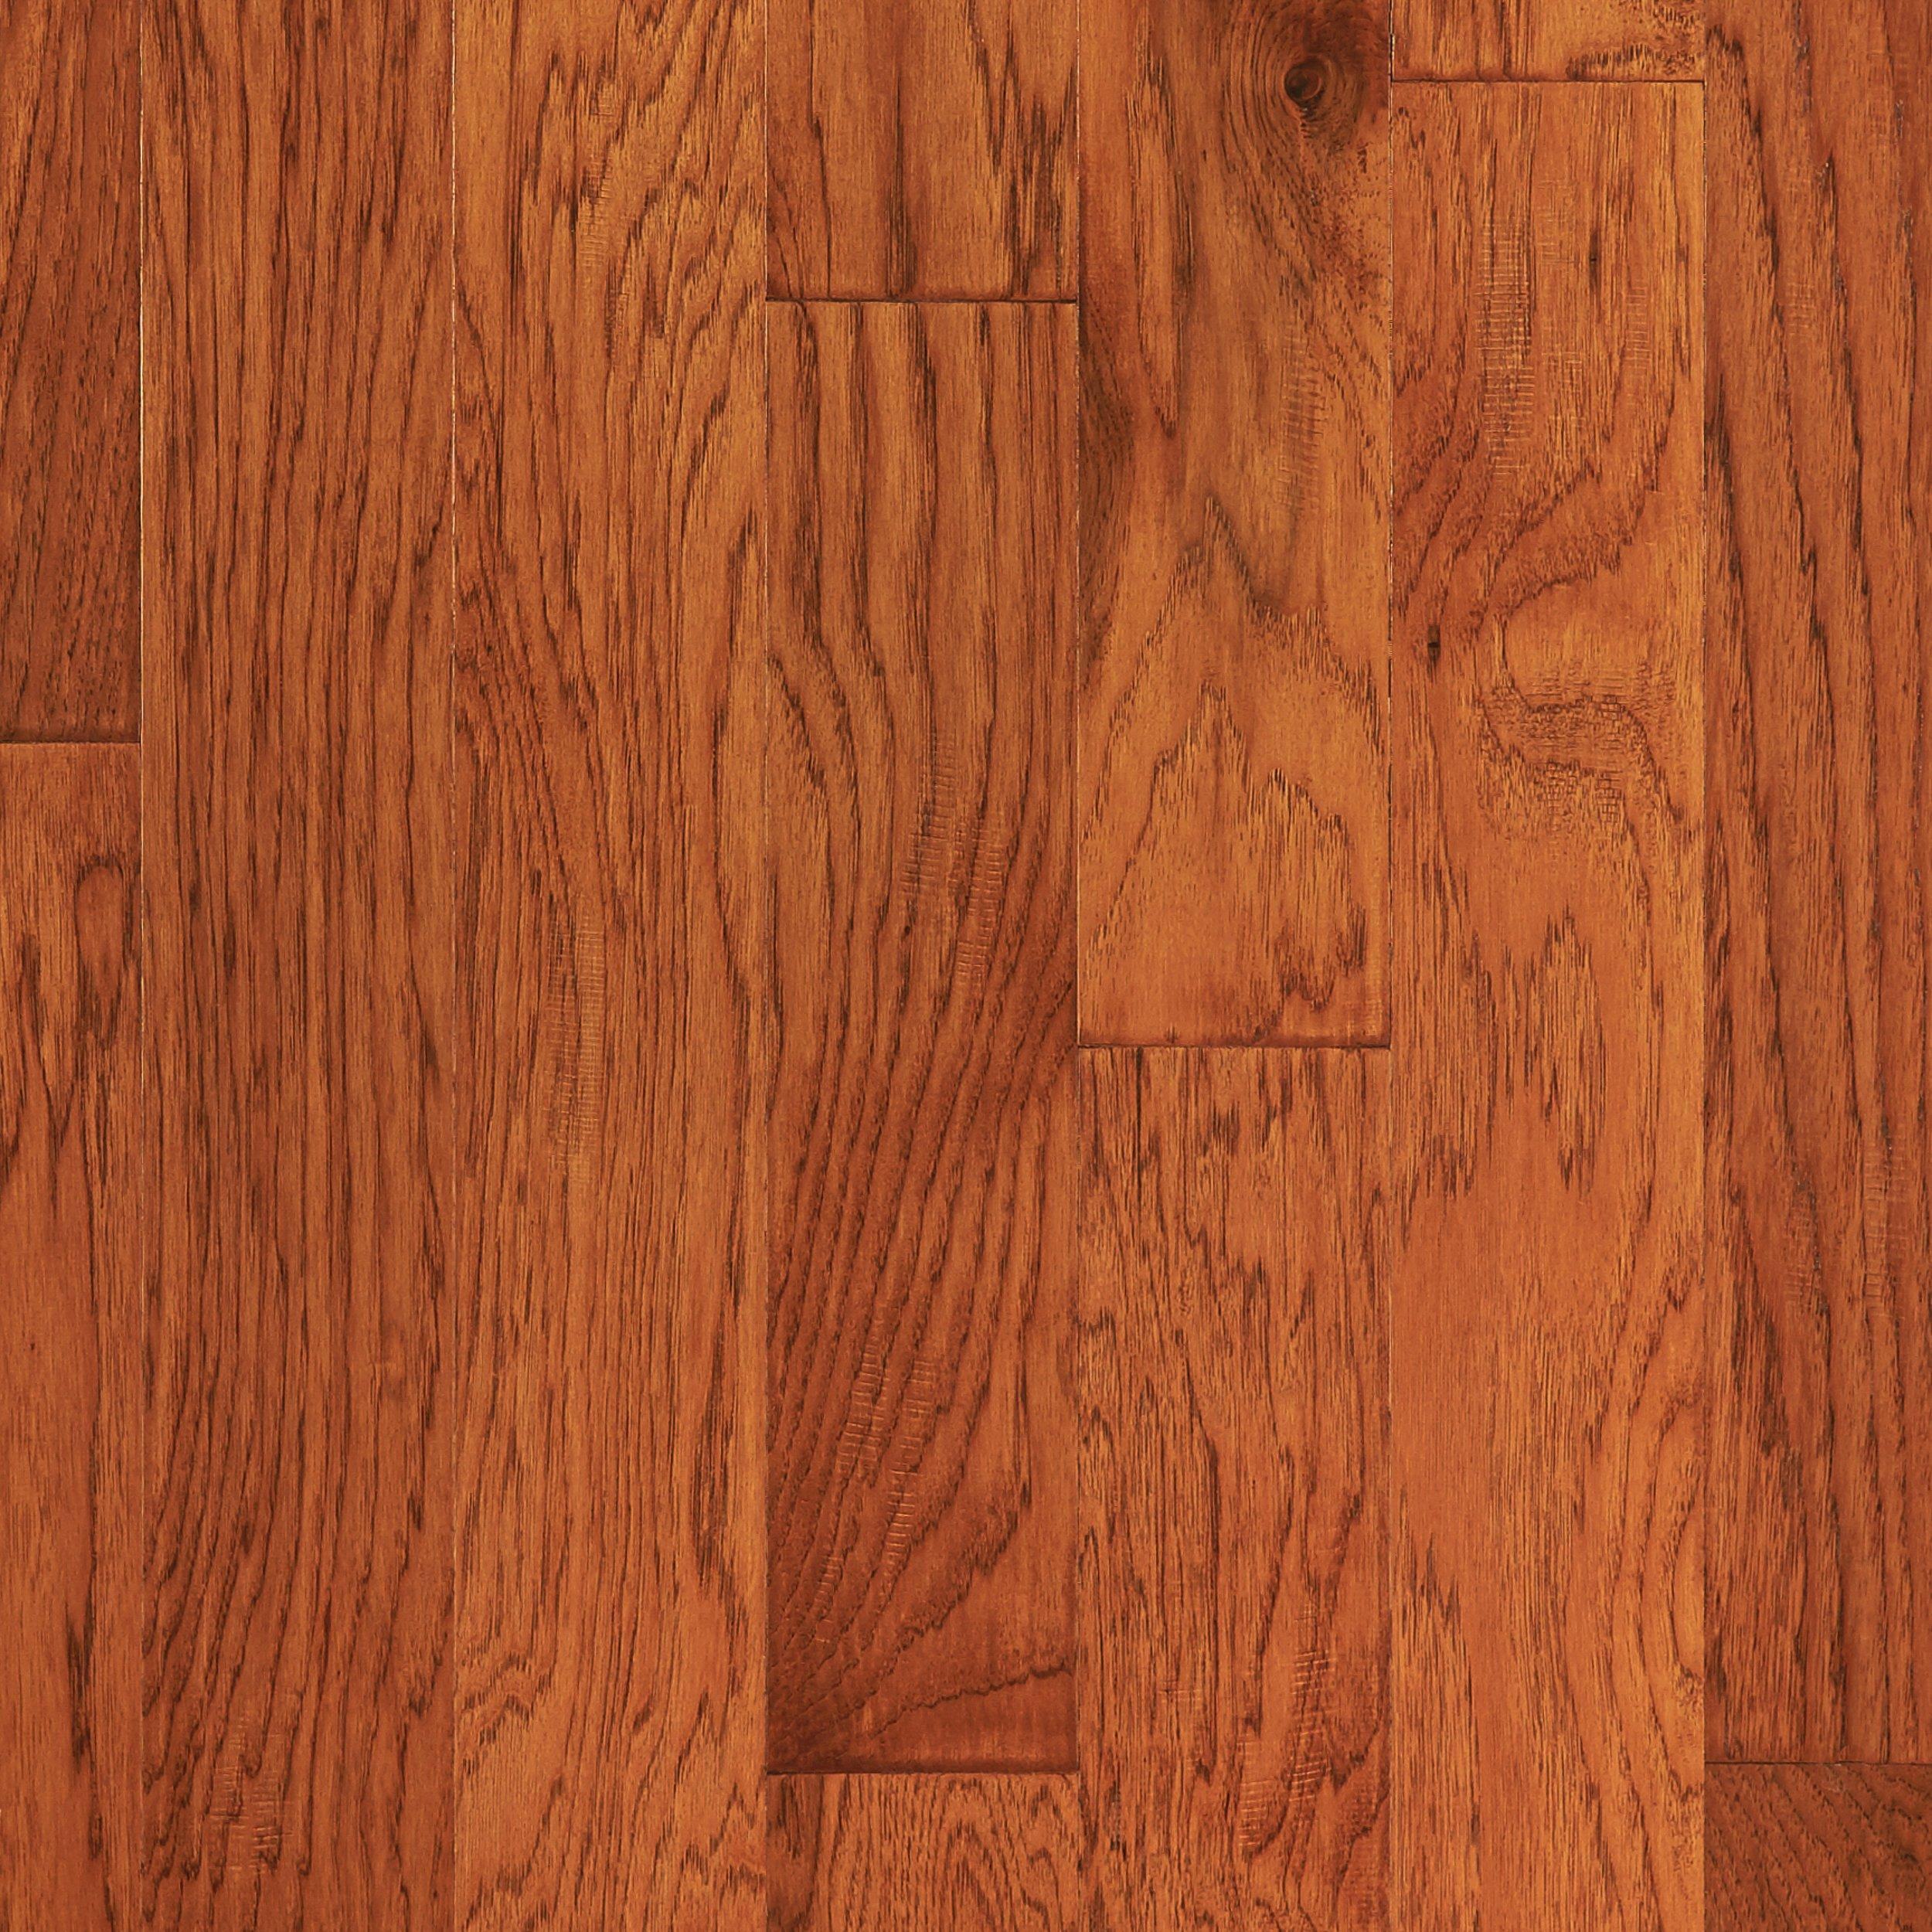 Santa Fe Hickory Hand Scraped Engineered Hardwood 38in x 5in